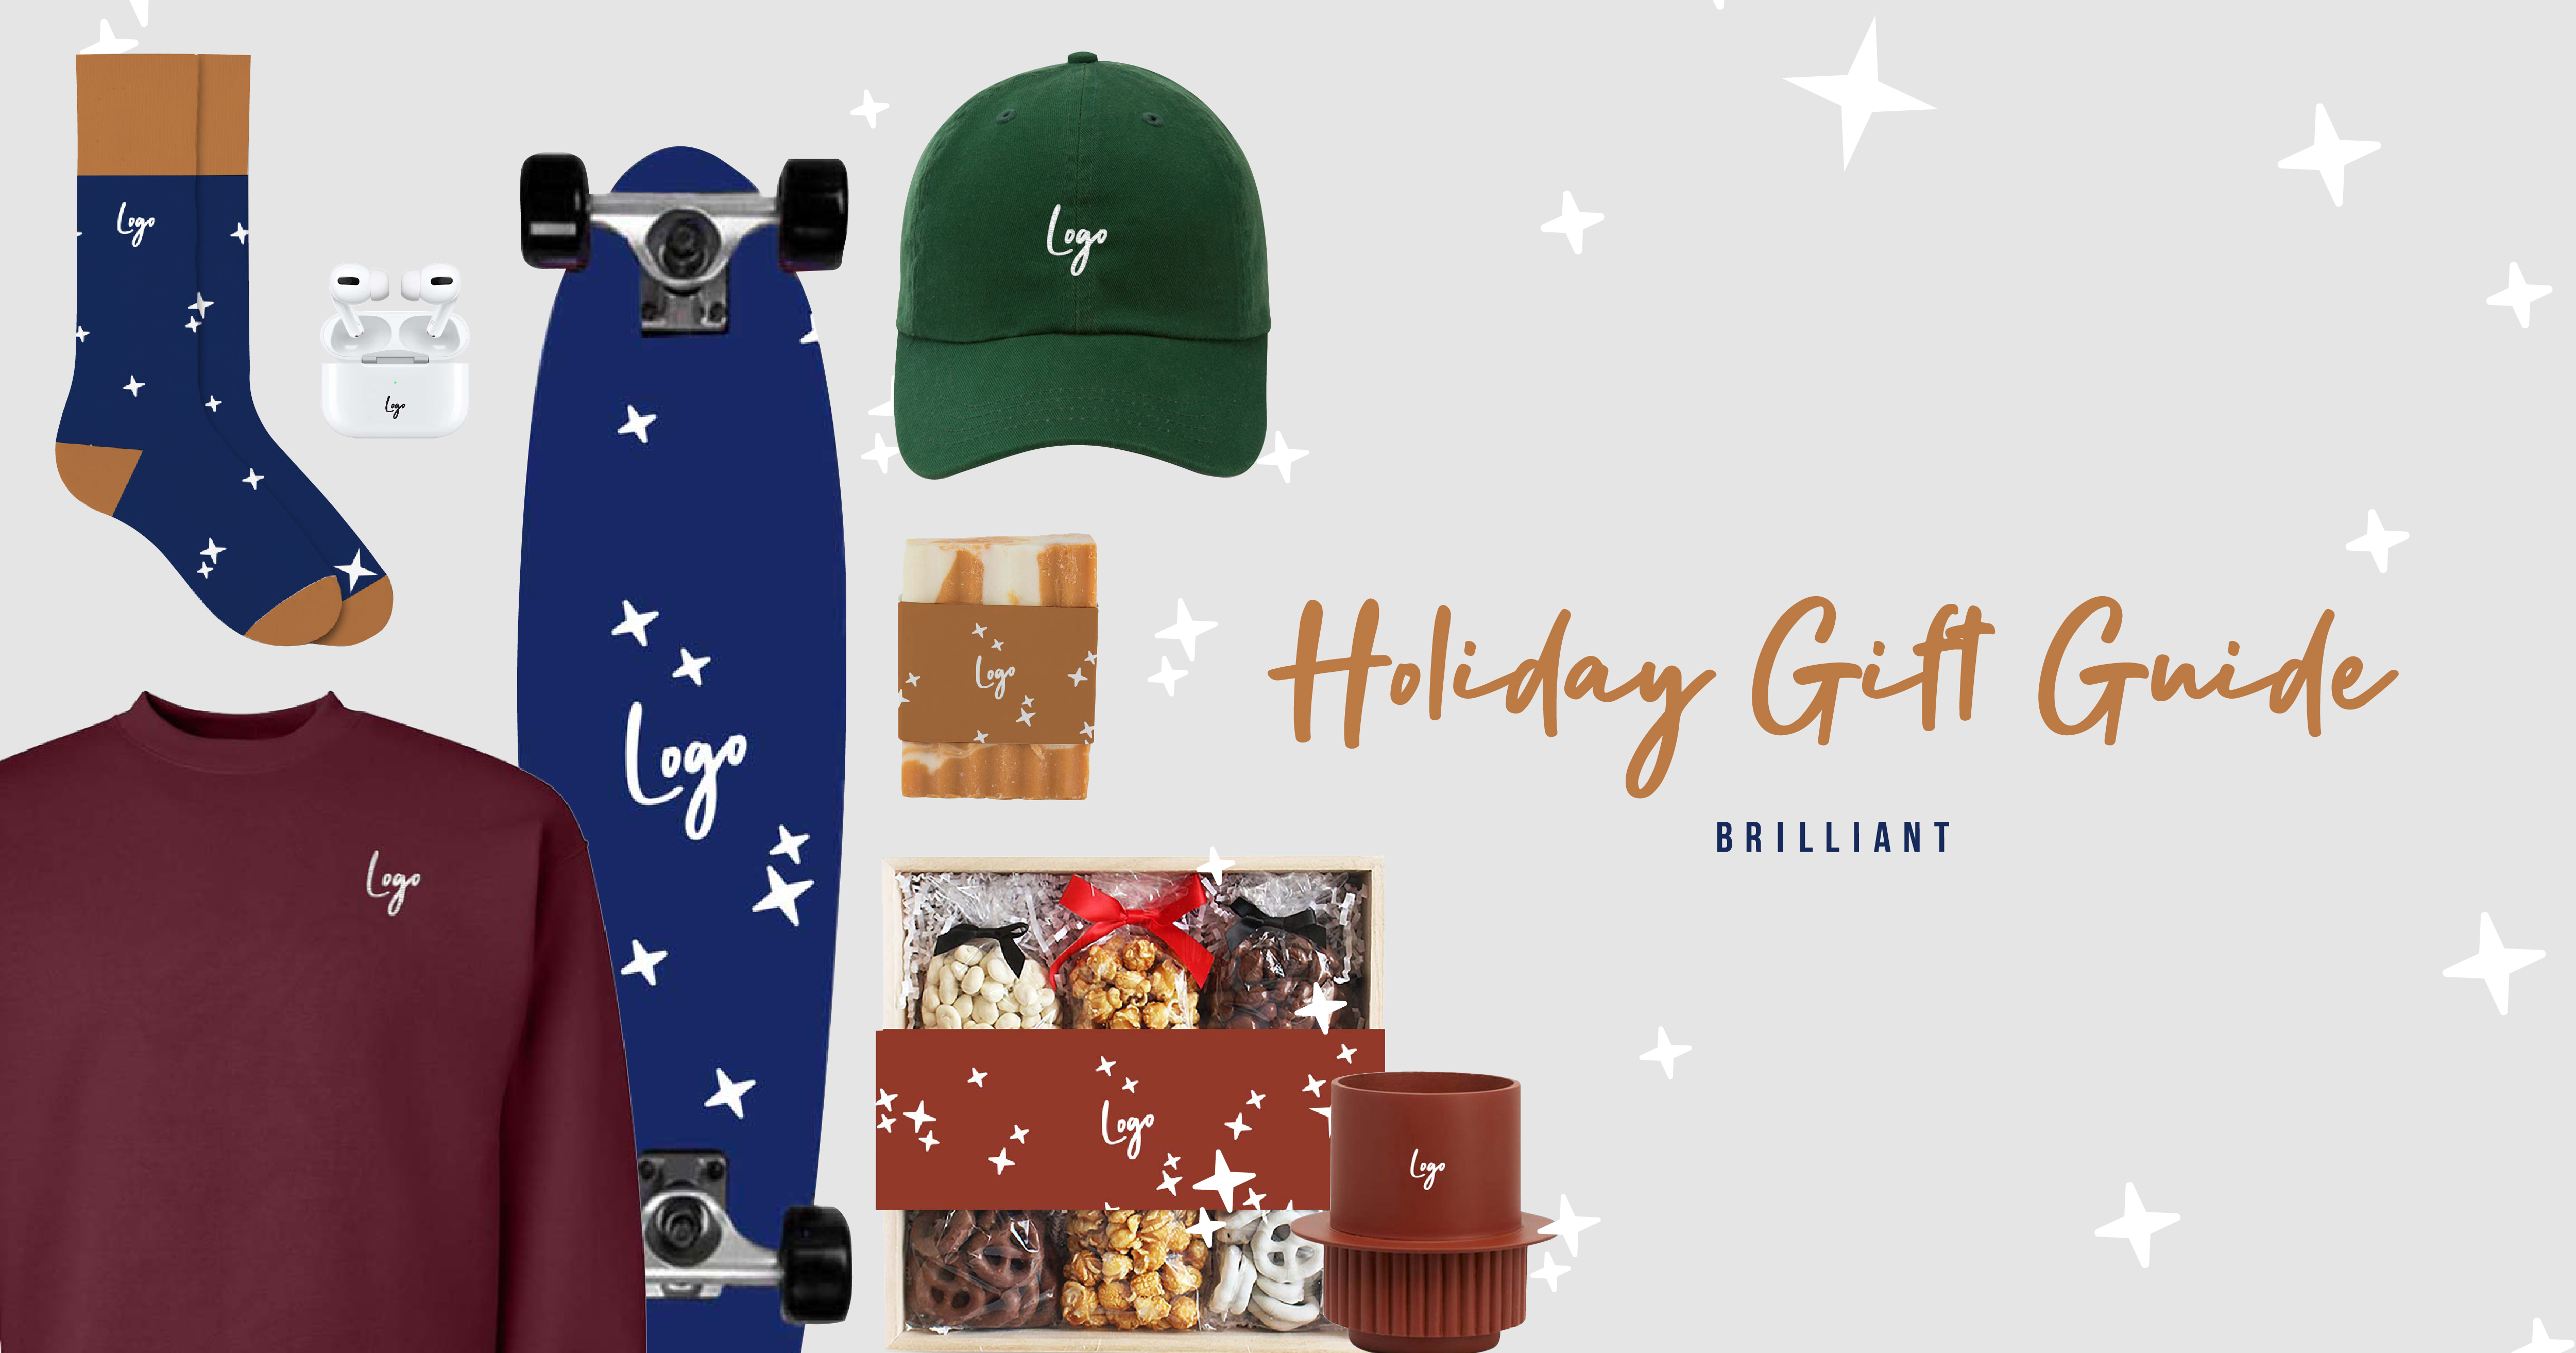 615b70cf044bf73f9ab3d6a1 holiday gift guide 2021 social%20media